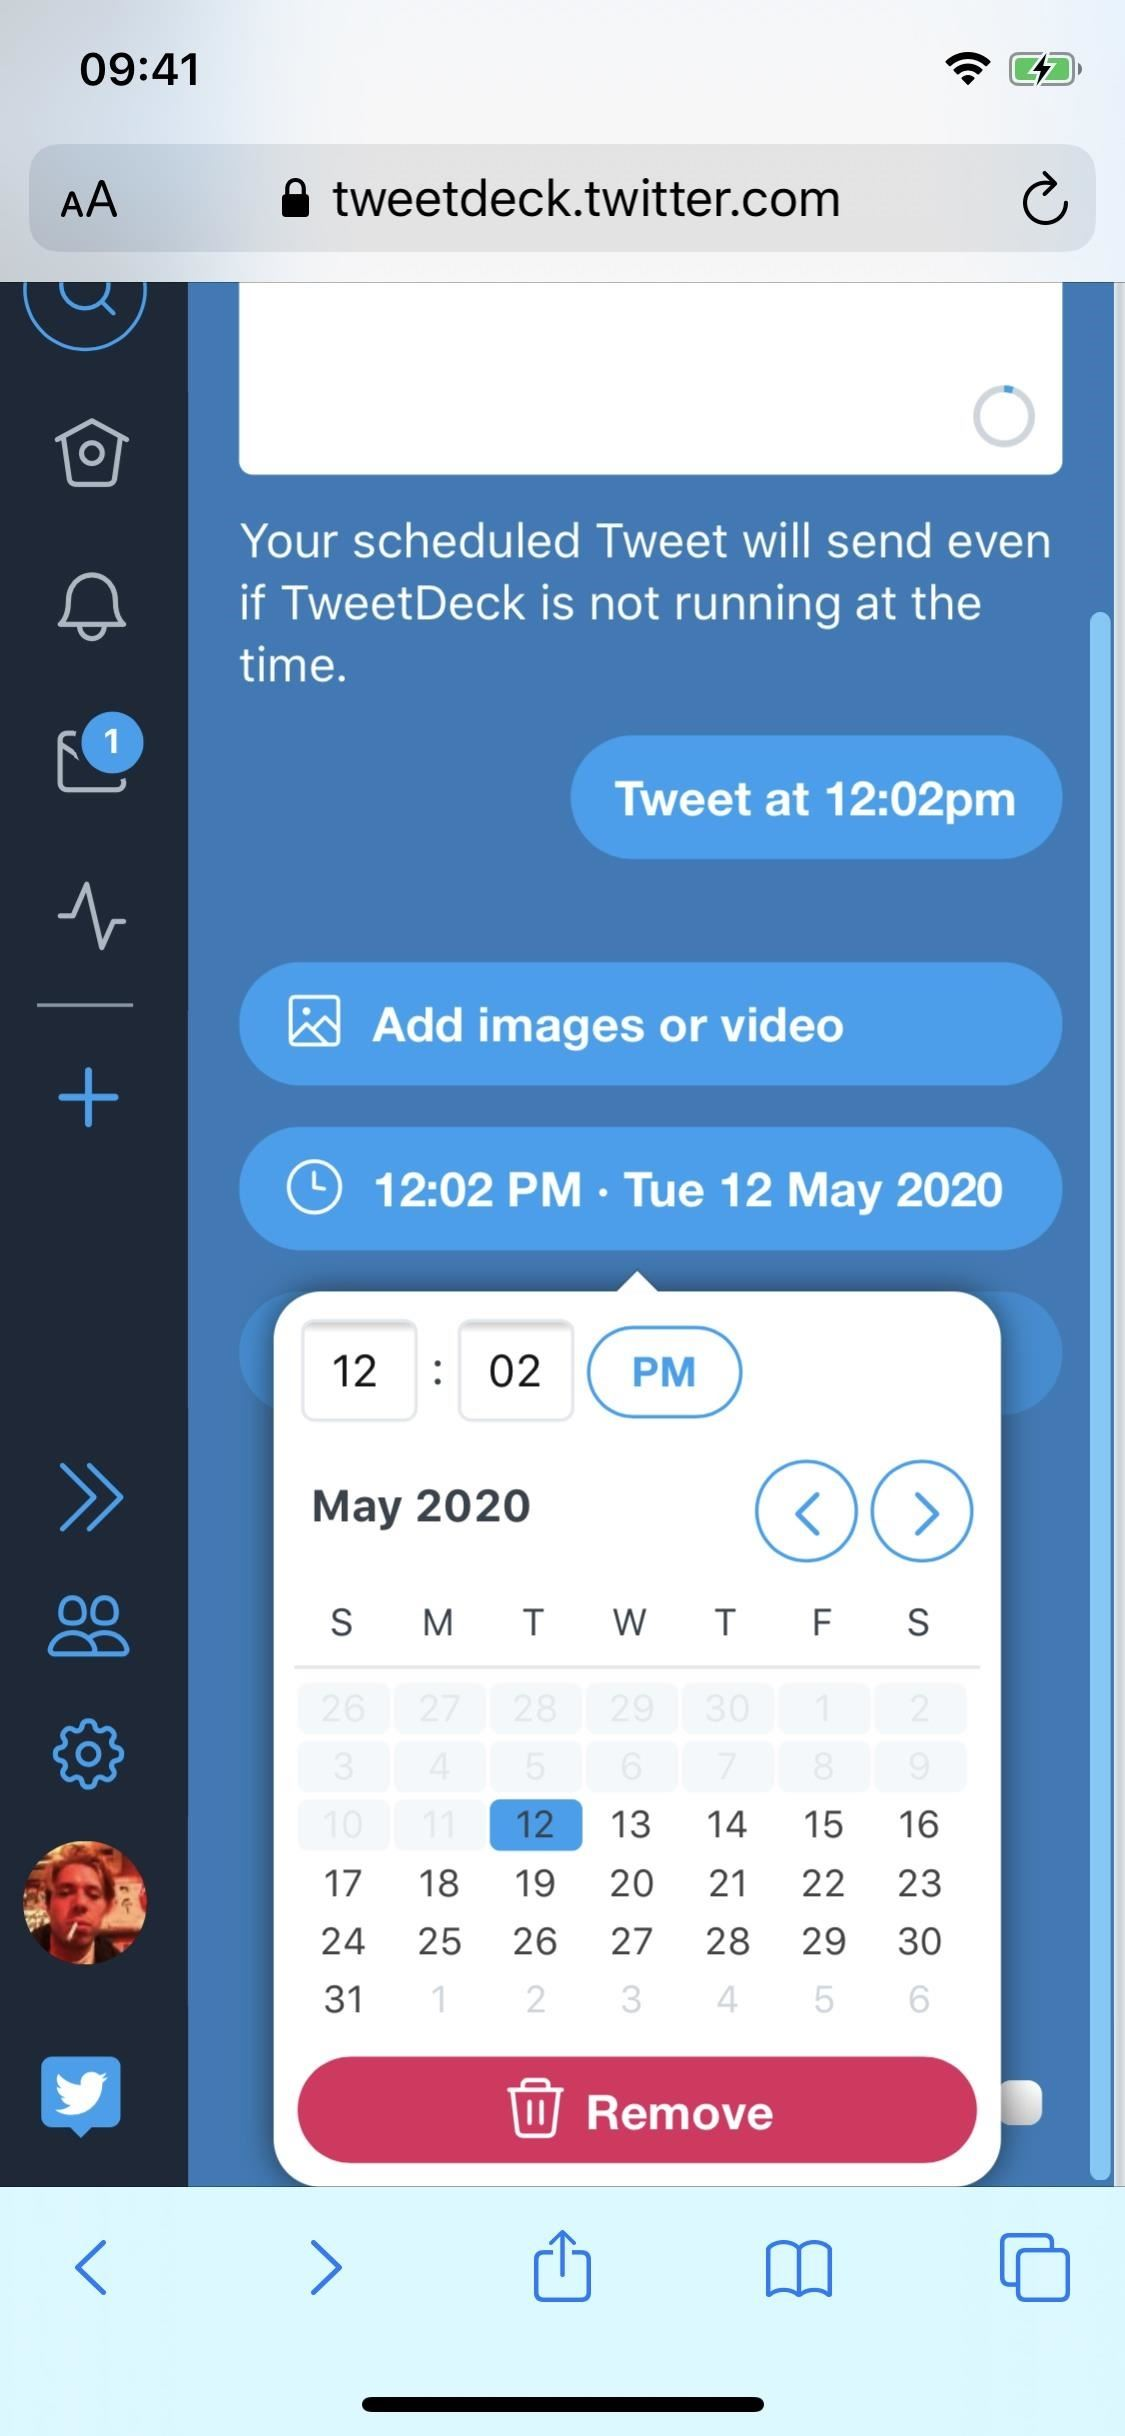 How to Schedule a Tweet on Twitter from Your iPhone or Android Phone